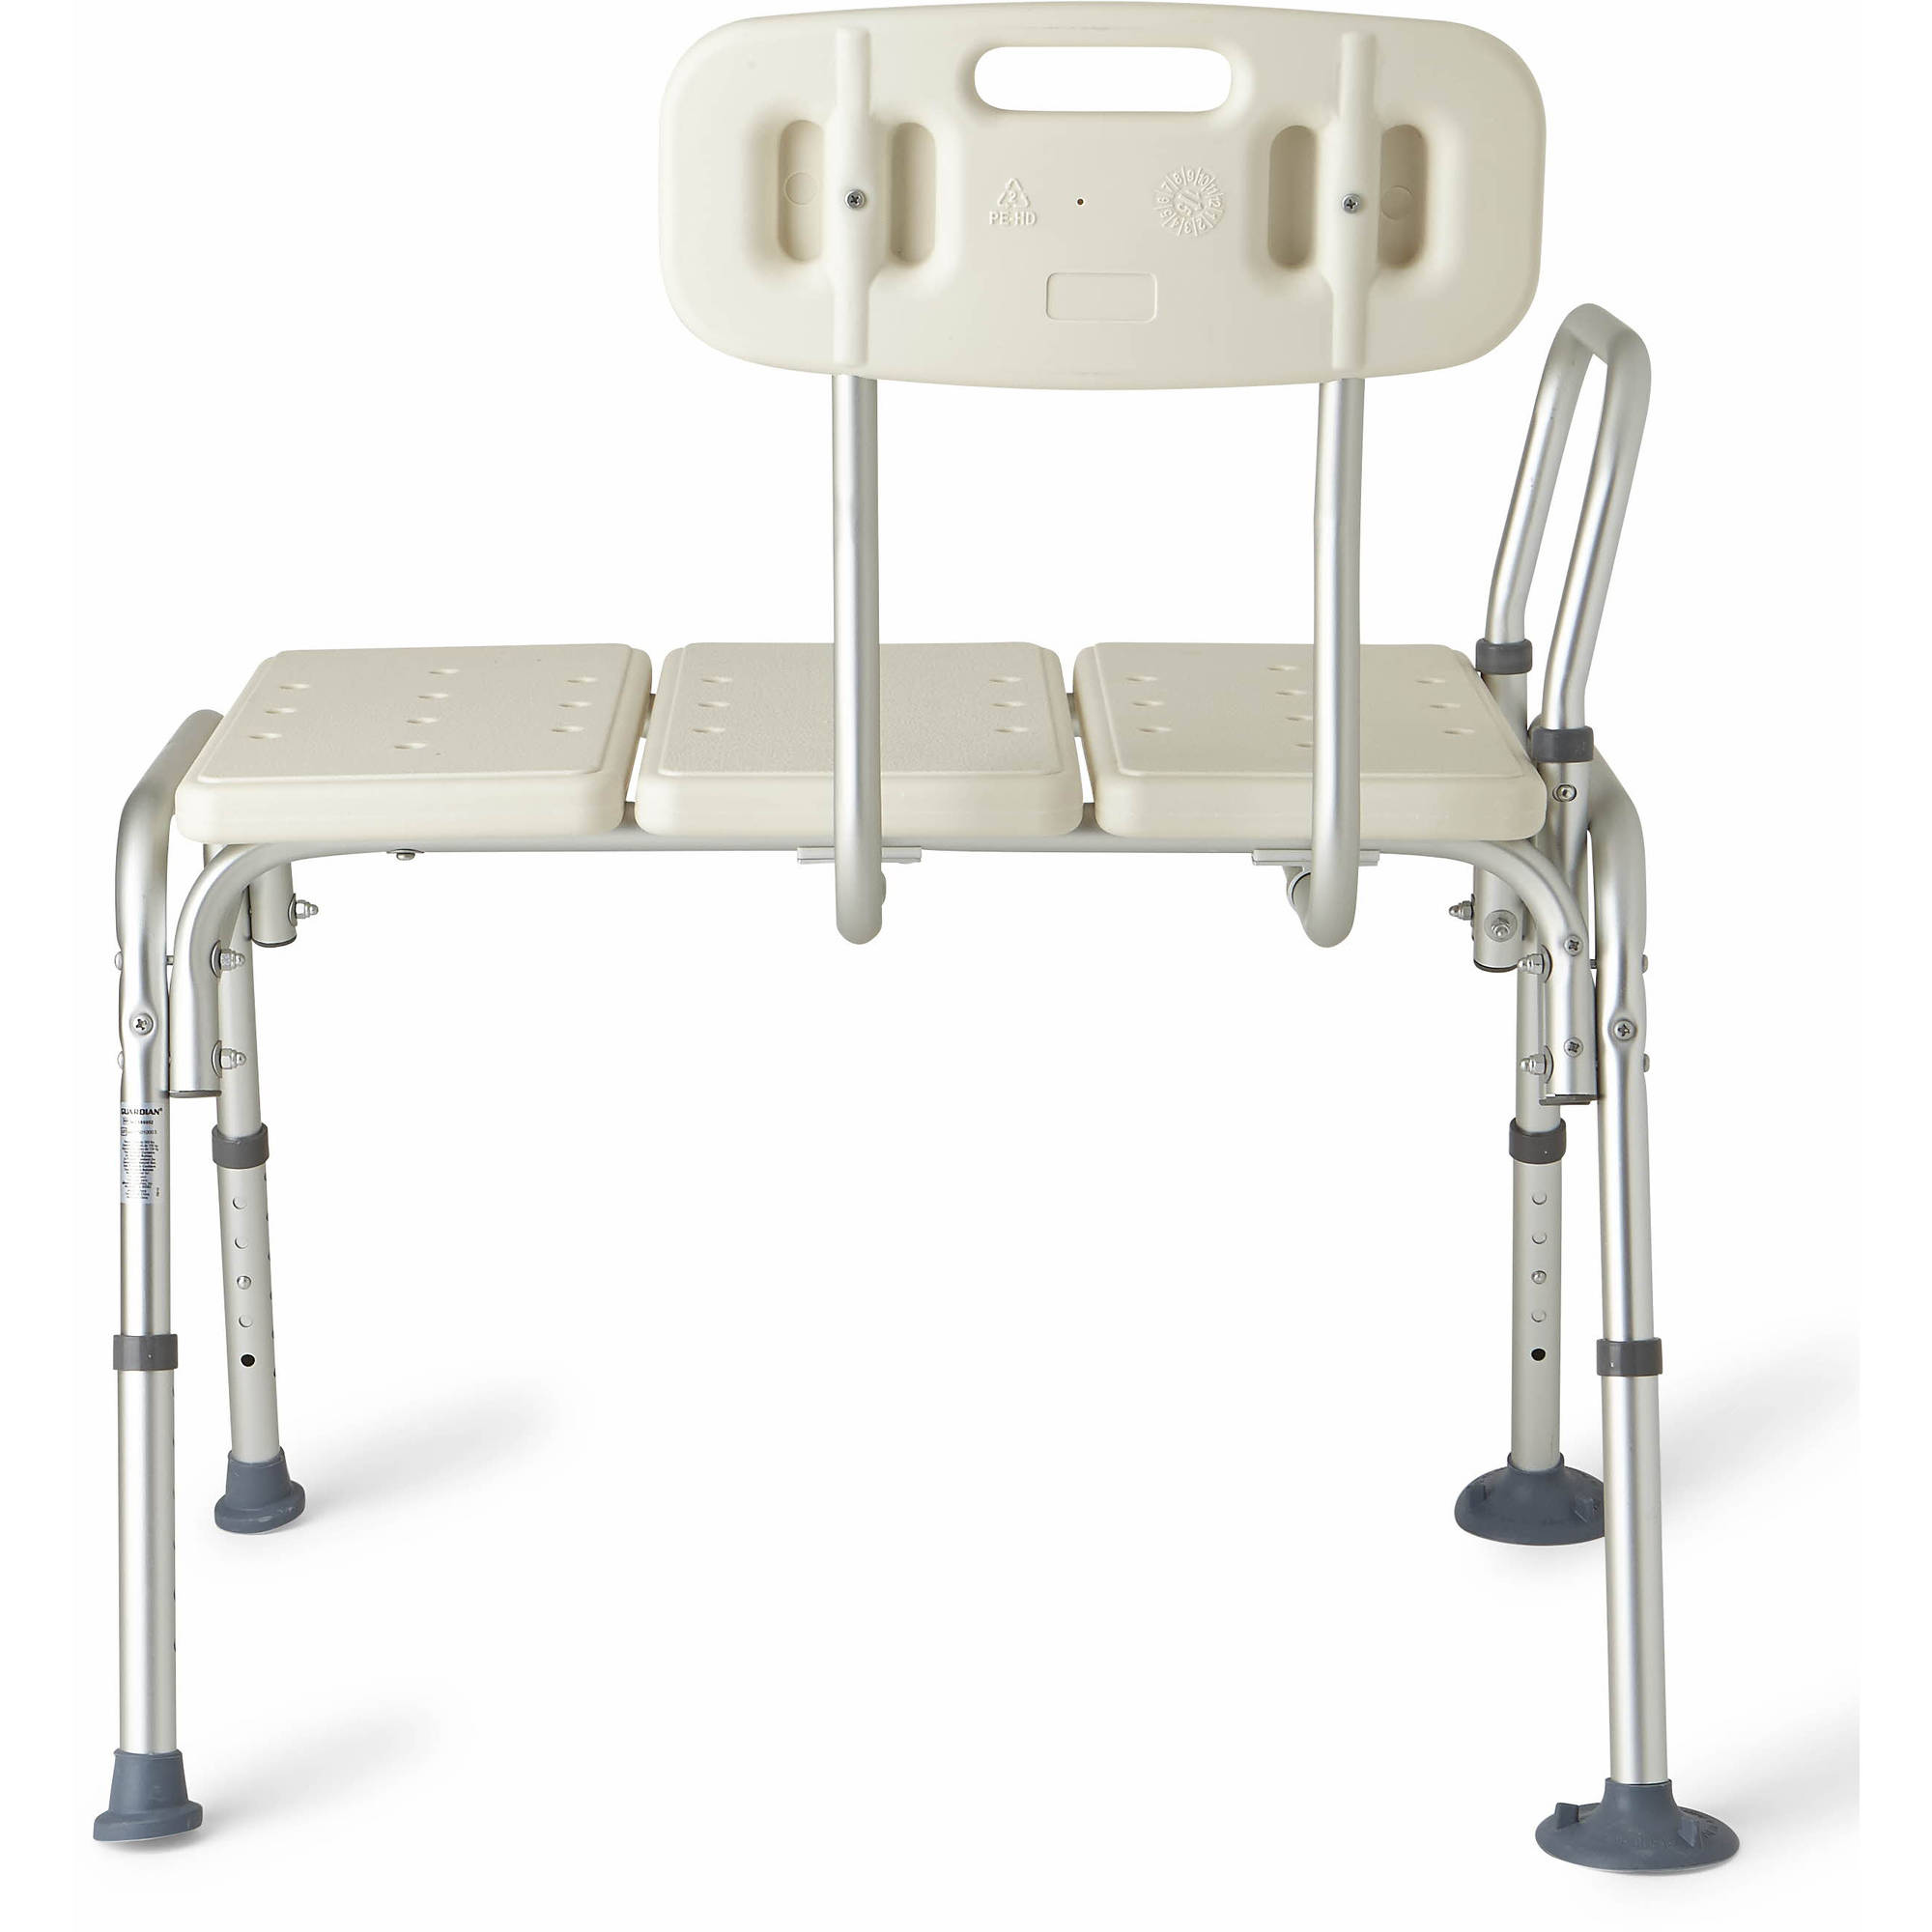 Medline Transfer Bench with Back Walmart